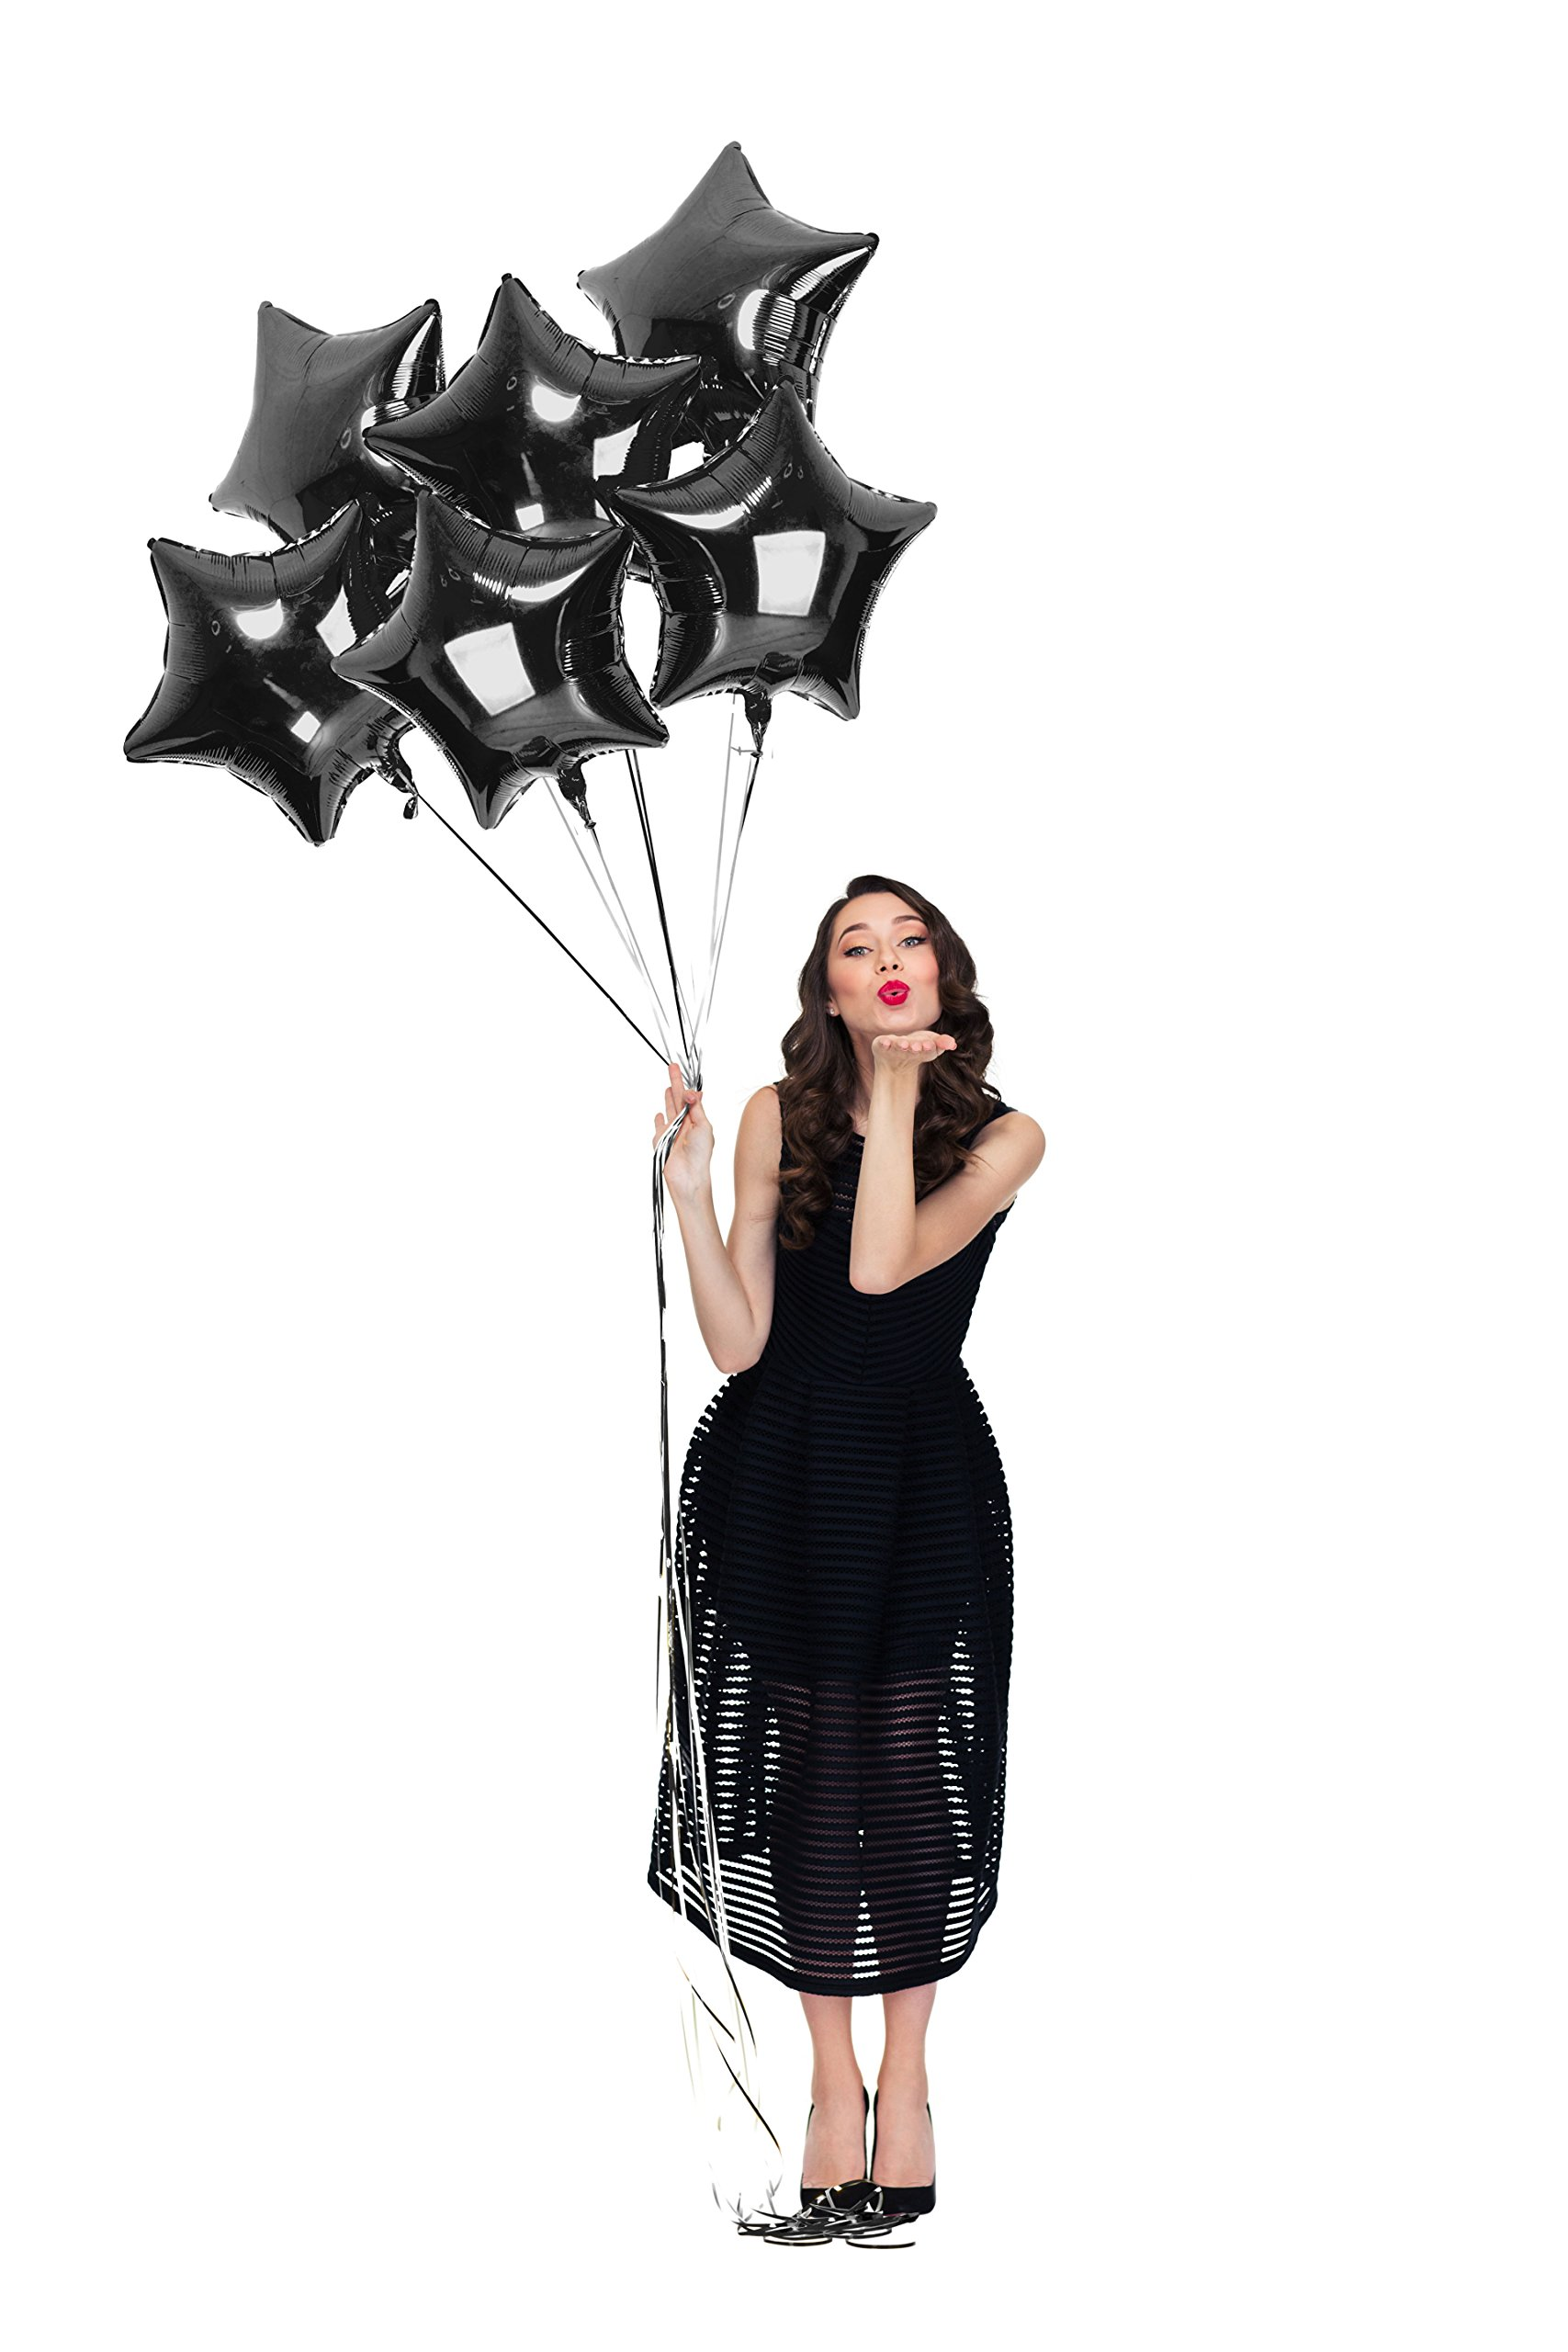 Treasures Gifted Black Star Shape Foil Balloons 18 Inch Sparkly Mylar 6 Pack for Birthday Wedding Graduation New Year Eve Party Supplies